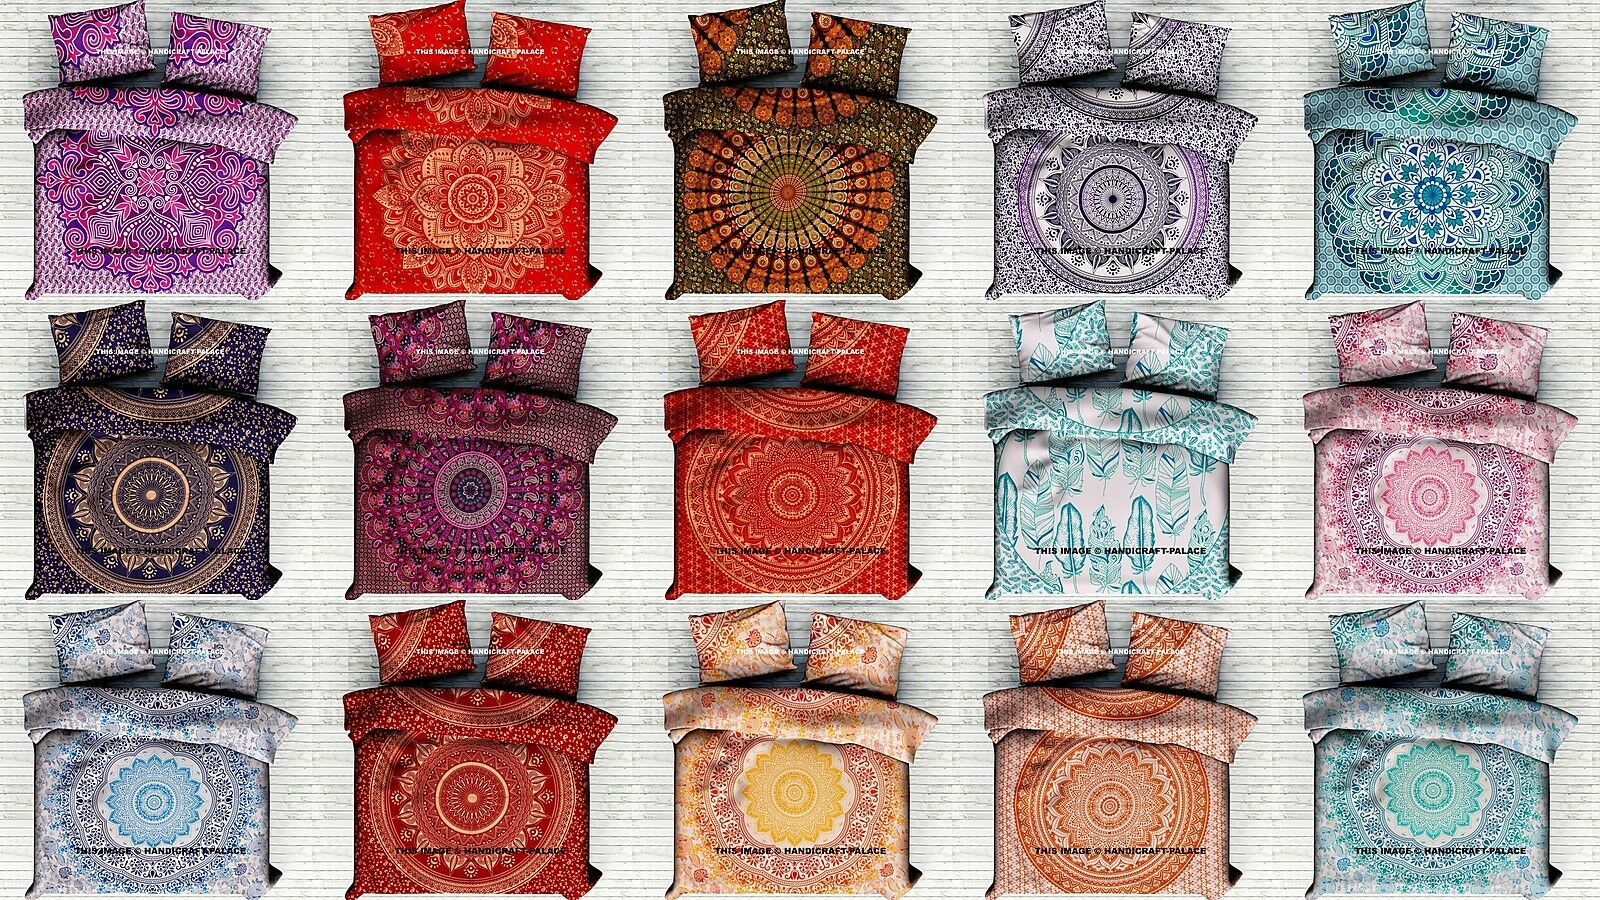 Indian Ombre Mandala Duvet Cover Comforter Doona Queen Bohemian Bedding Blanket